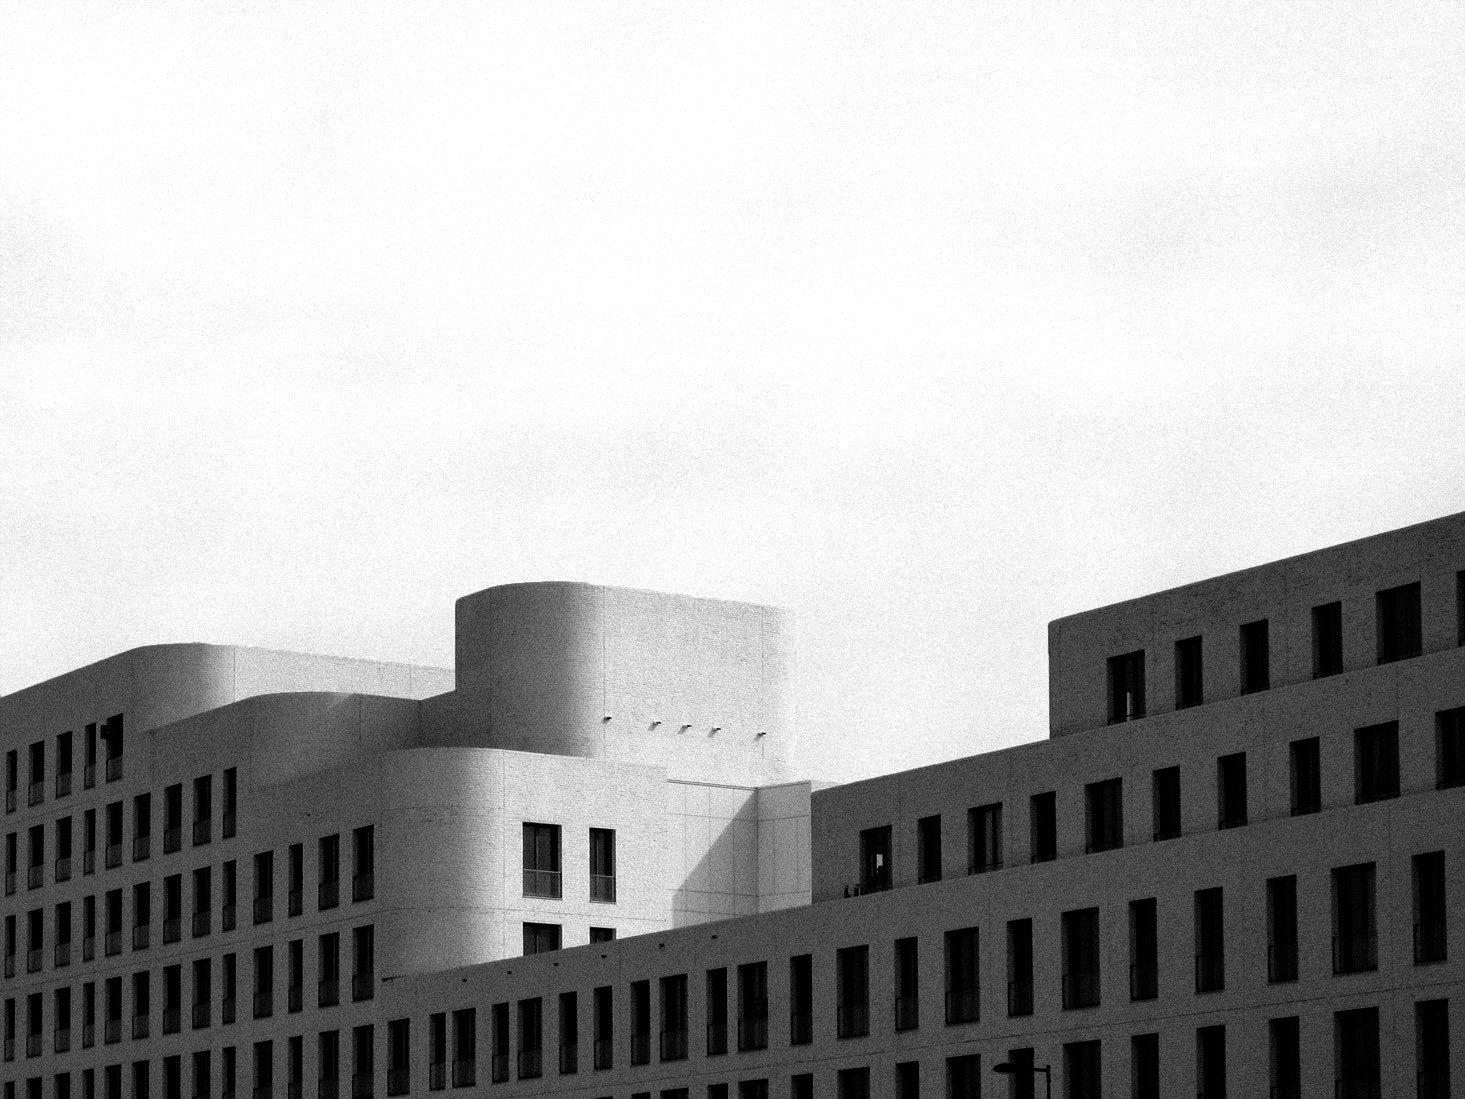 Photograph New buildings, new bauhaus by Baervan  on 500px